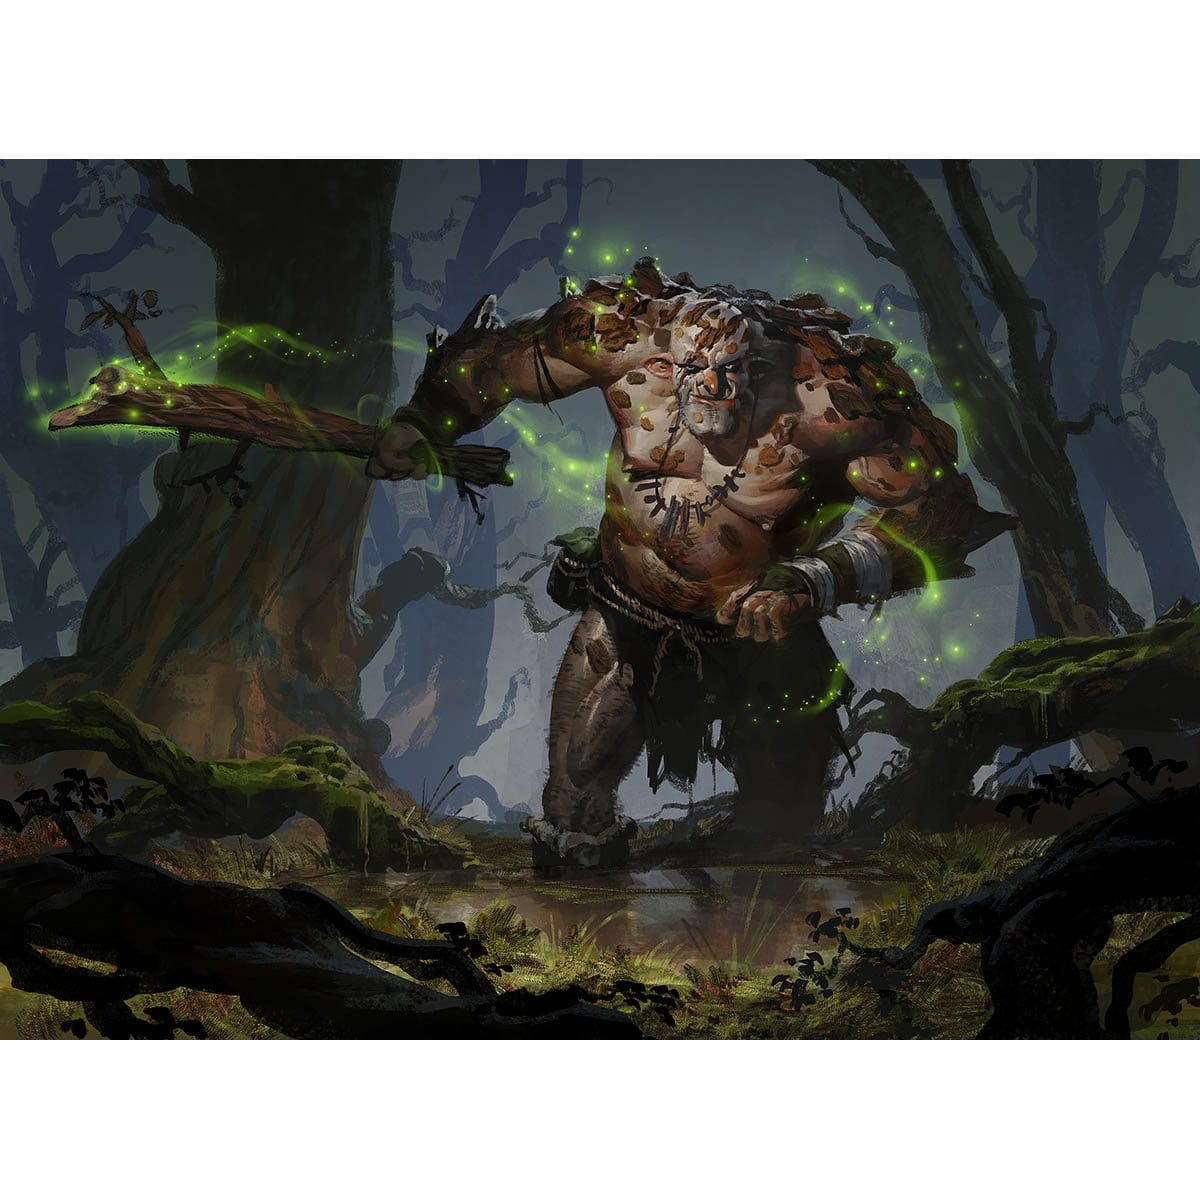 Barkhide Troll Print - Print - Original Magic Art - Accessories for Magic the Gathering and other card games